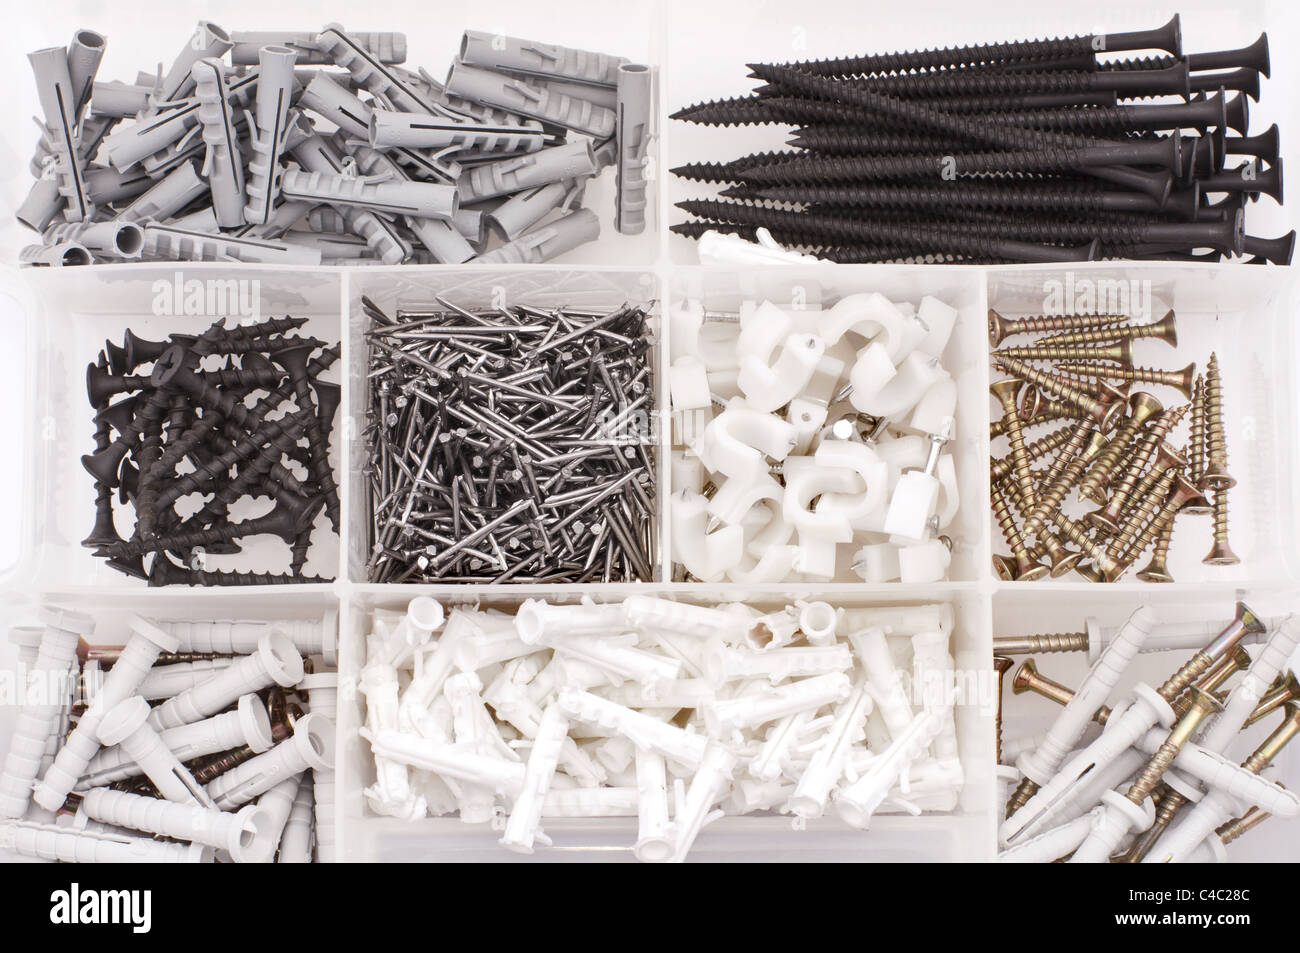 Screws, nails, dowels in the case - Stock Image